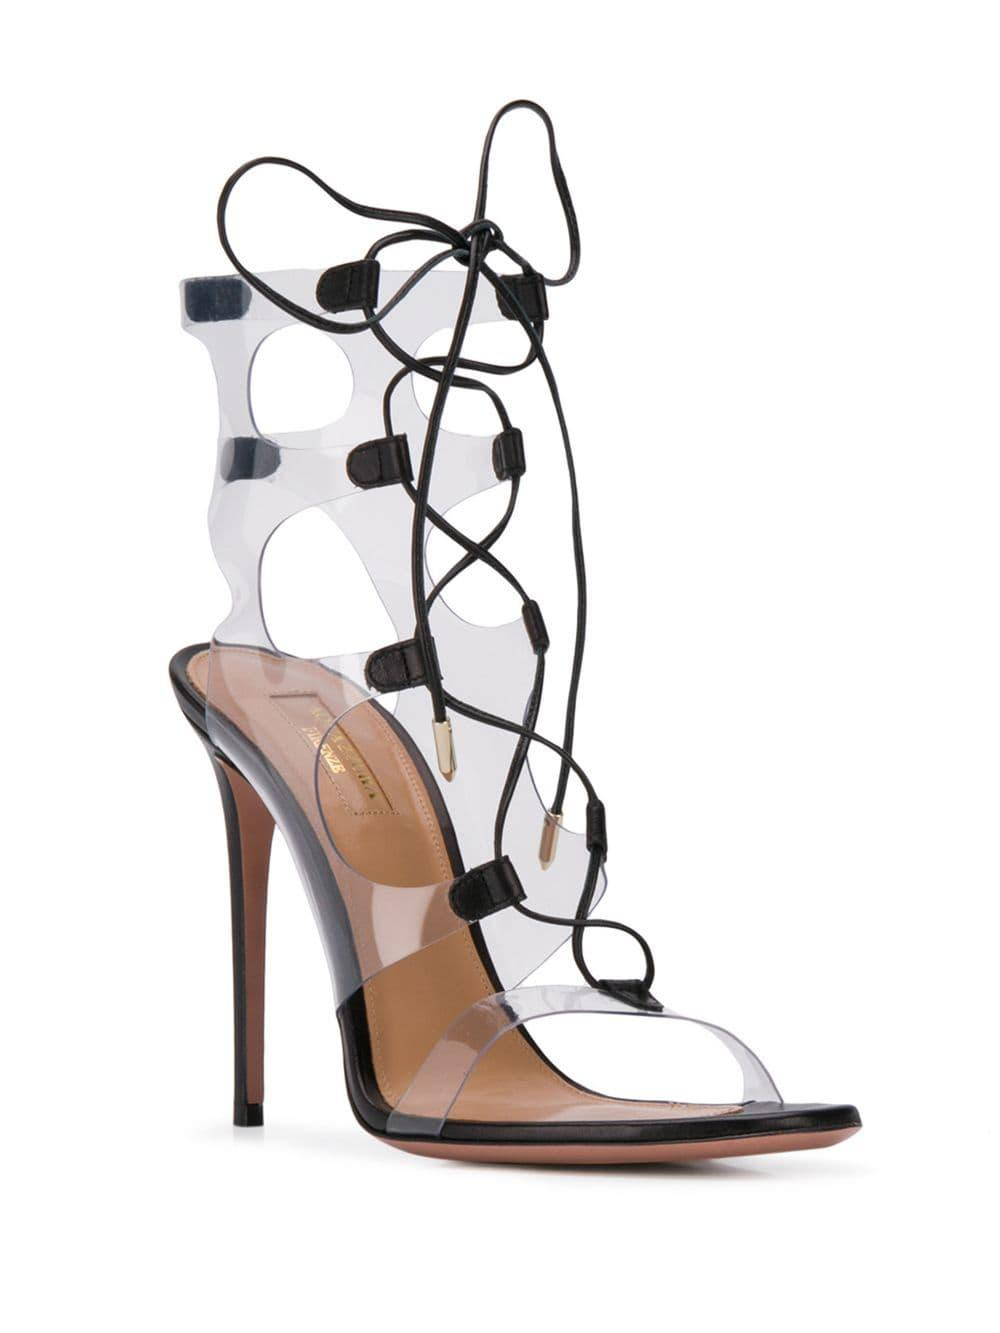 9f358e58f2c Lyst - Aquazzura Milos Sandals in Black